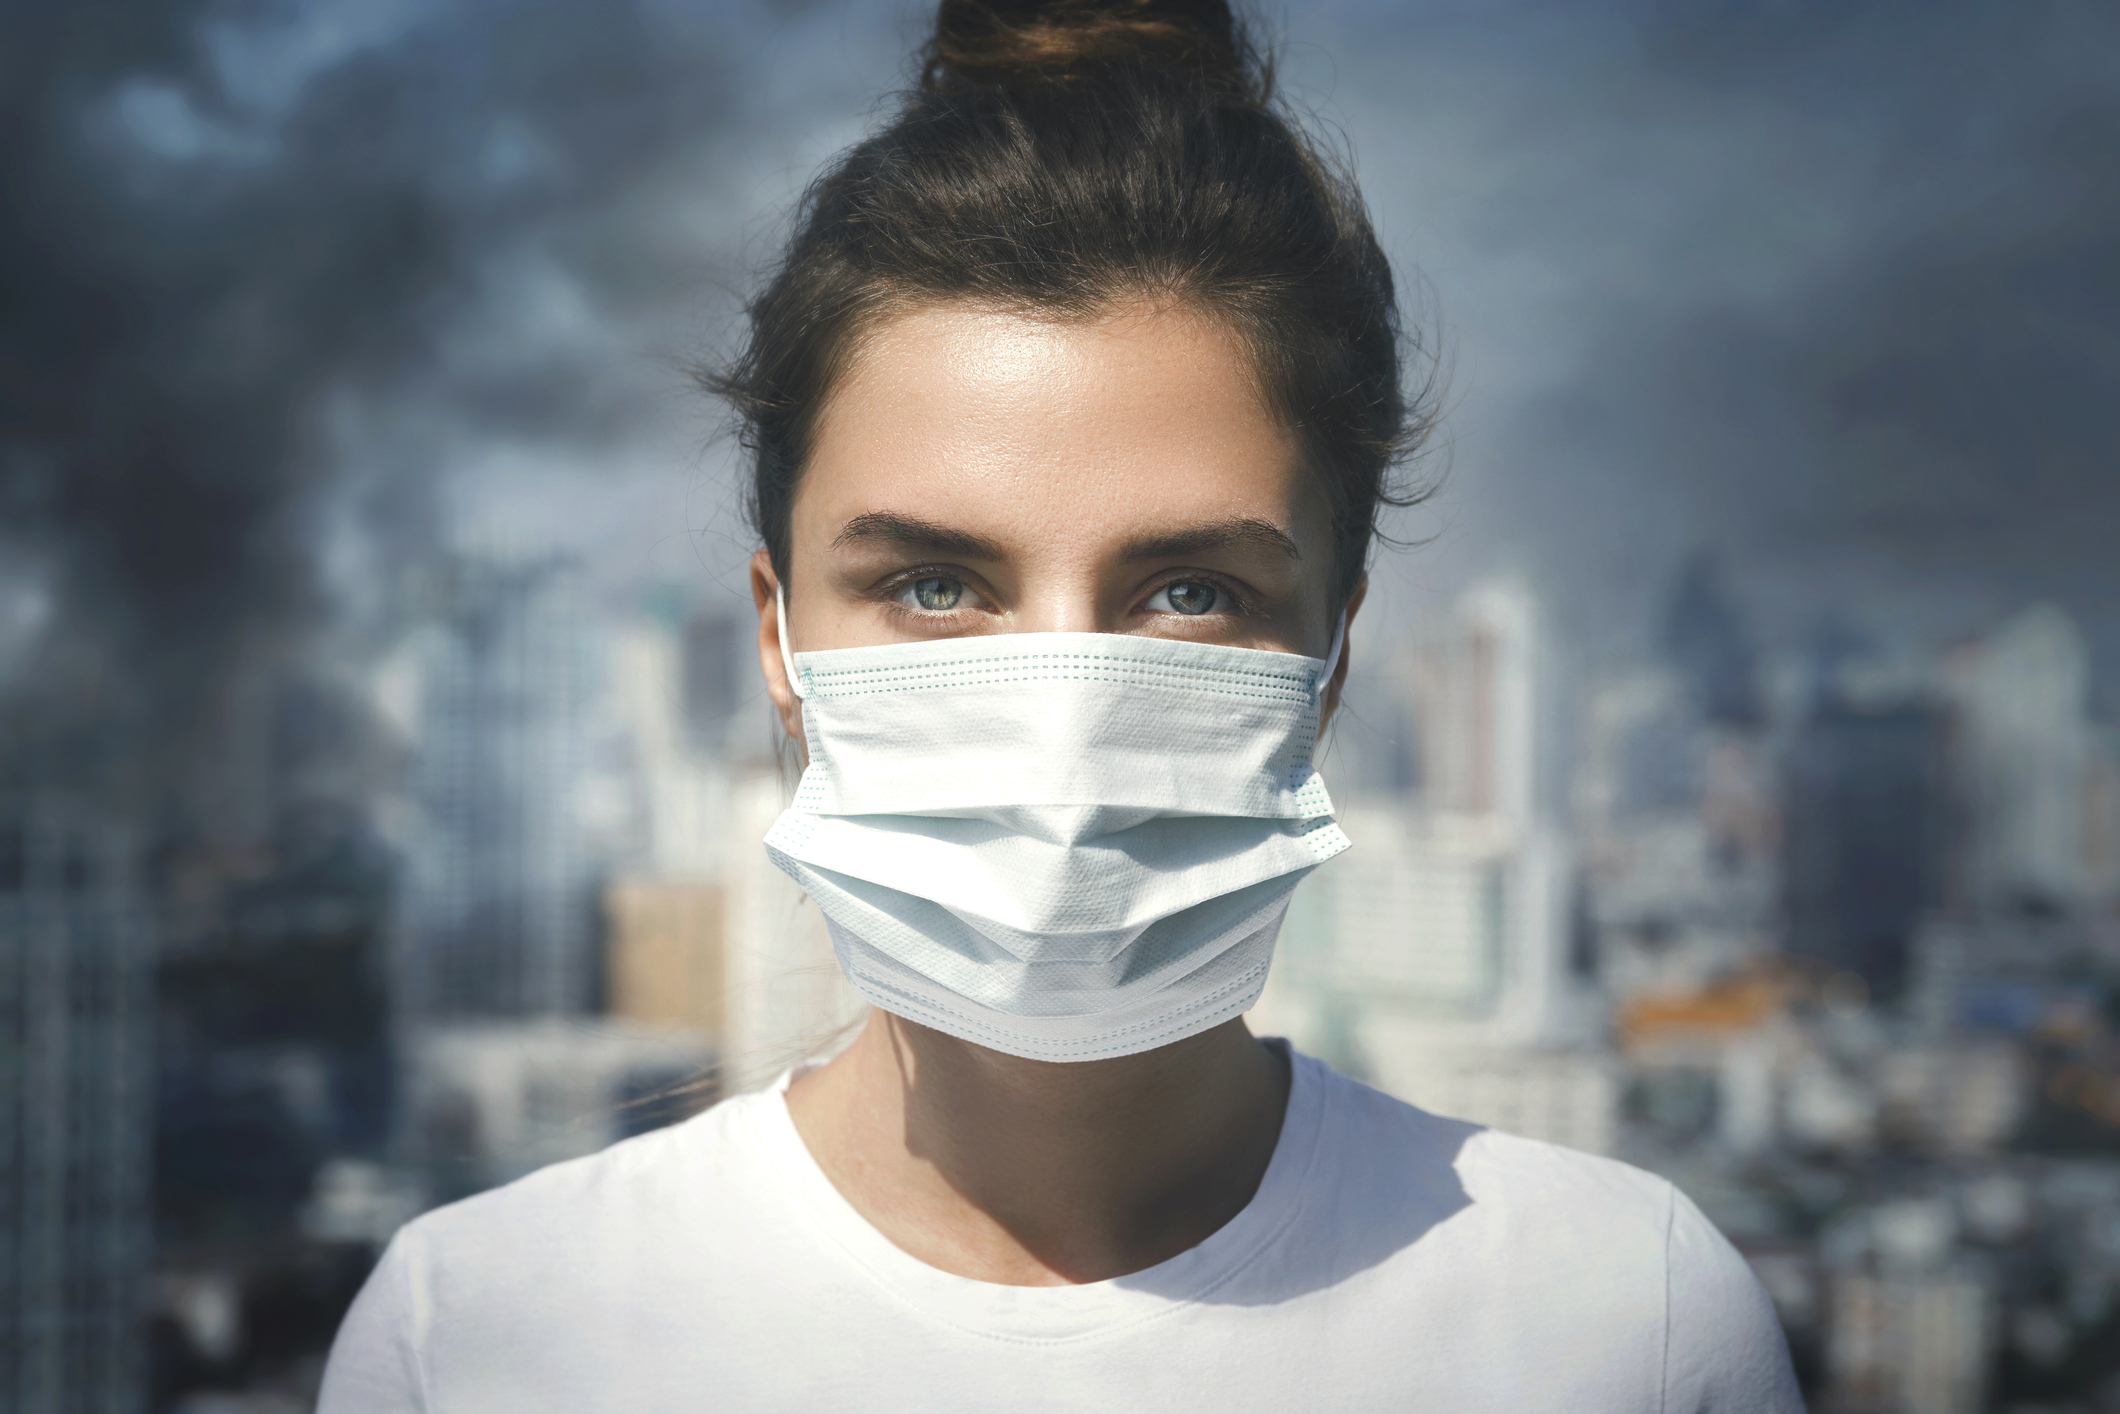 Lady in mask due to pollution